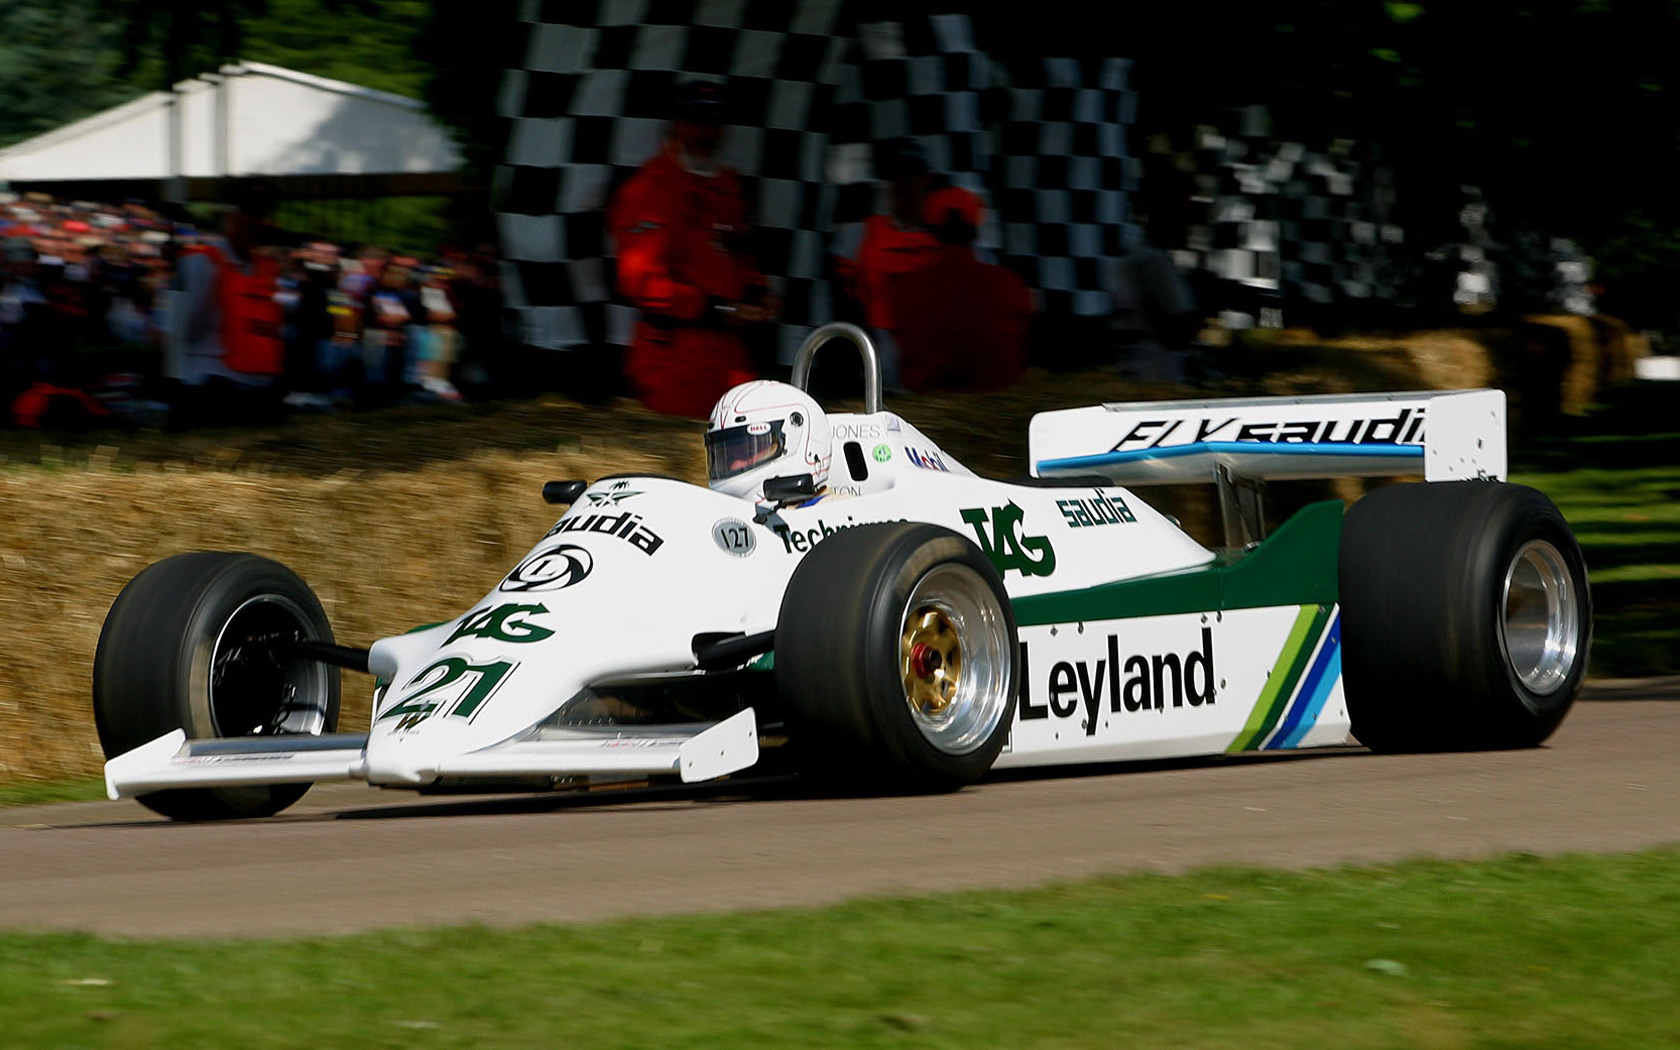 出典:http://www.f1fanatic.co.uk/wp-content/uploads/2009/07/williamsfw07_1981_goodwood.jpg